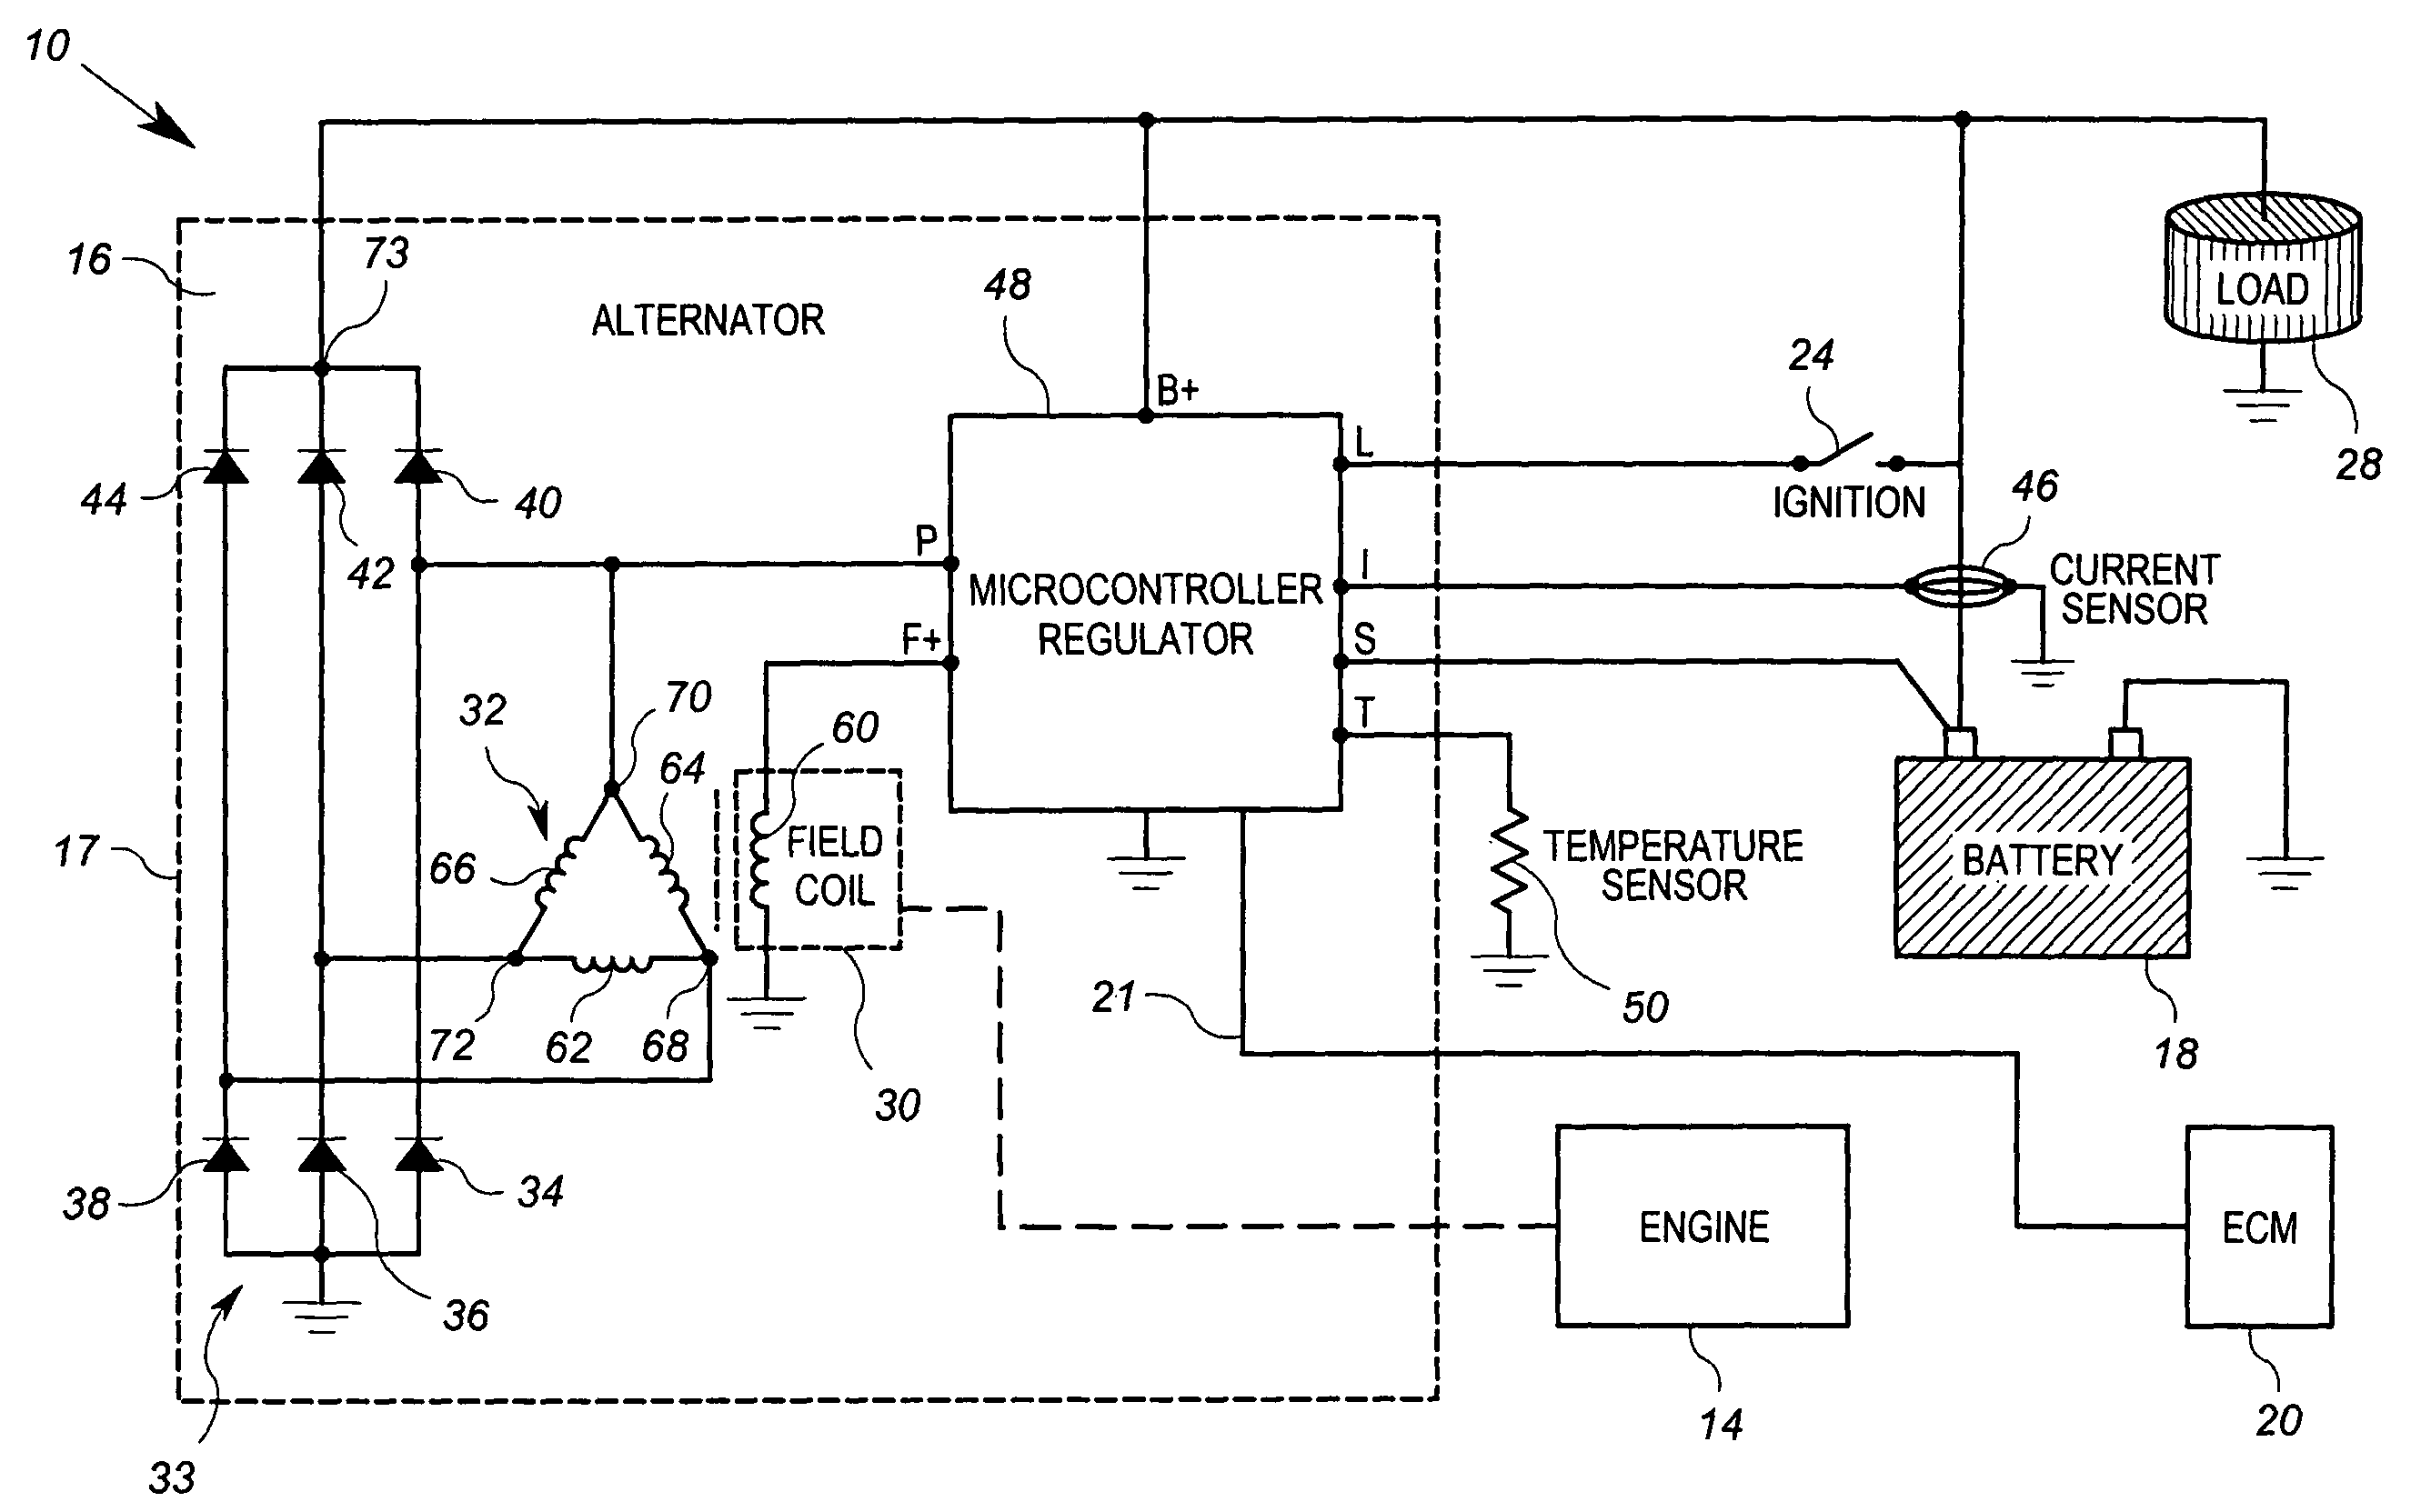 Patent Us8330430 - Alternator Regulator With Variable Rotor Field Frequency